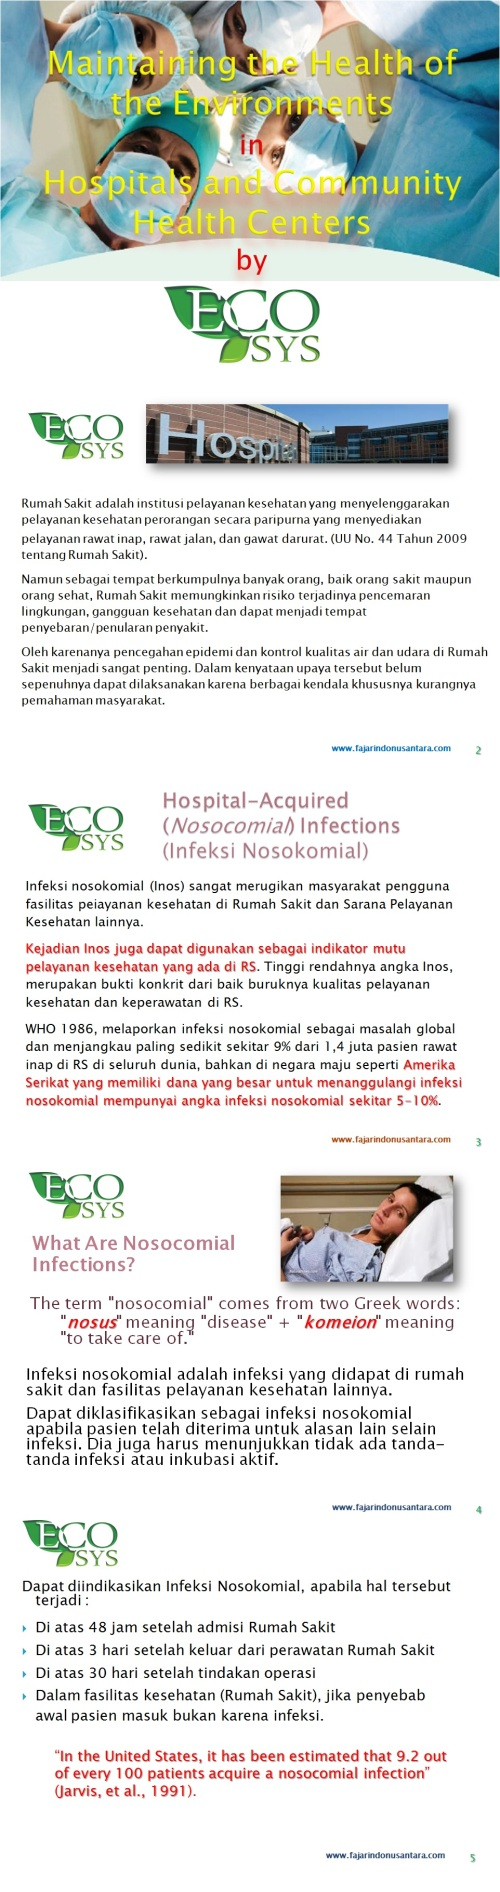 ECOSYS FOR HOSPITAL